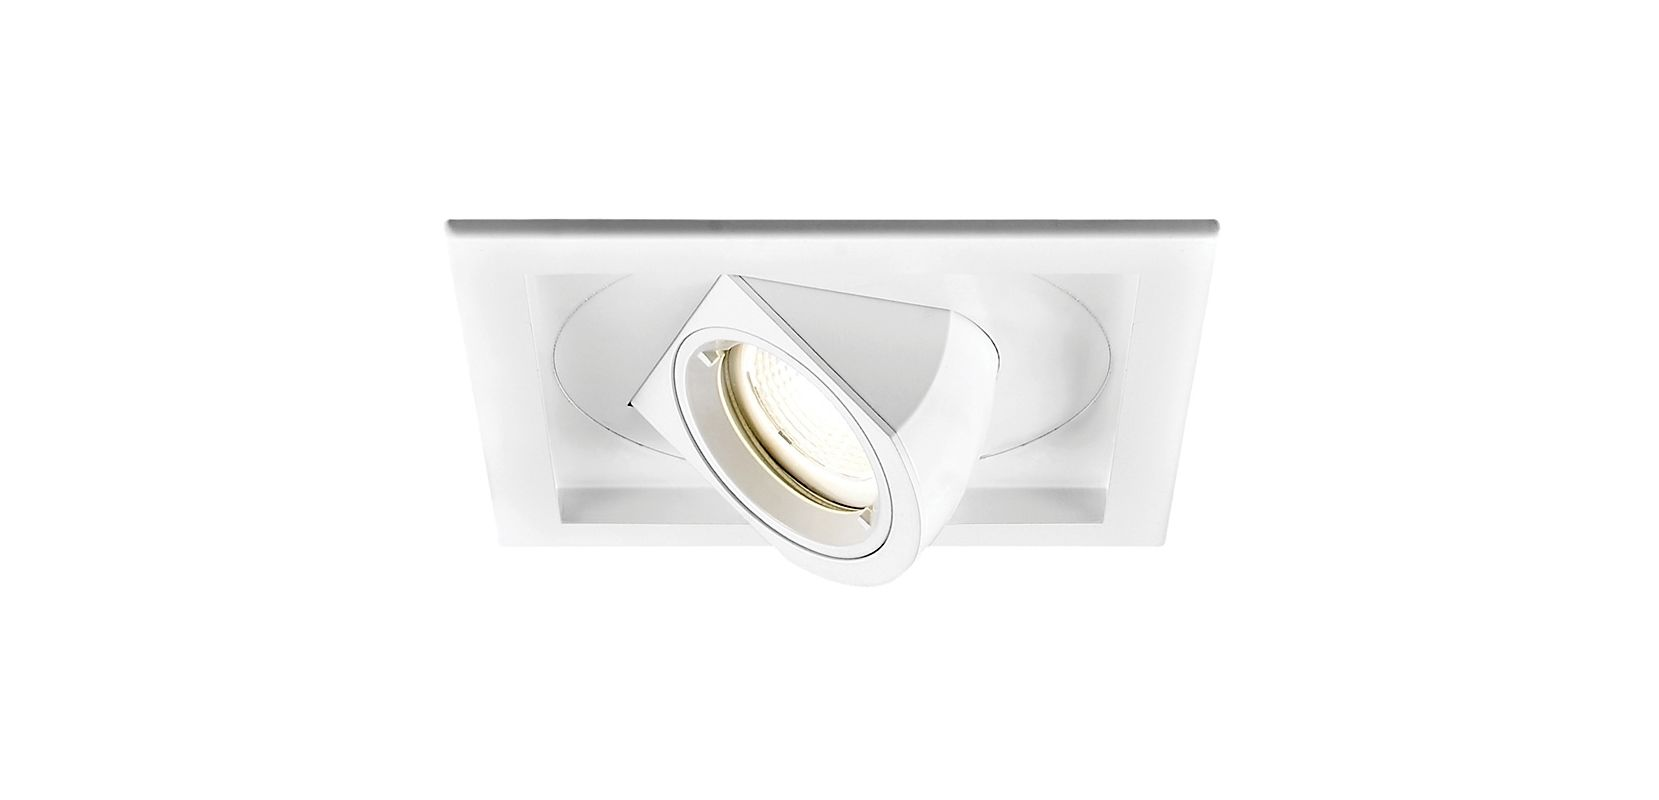 WAC Lighting MT-5LD125T-S930 6&quote 3000K High Output LED Recessed Light